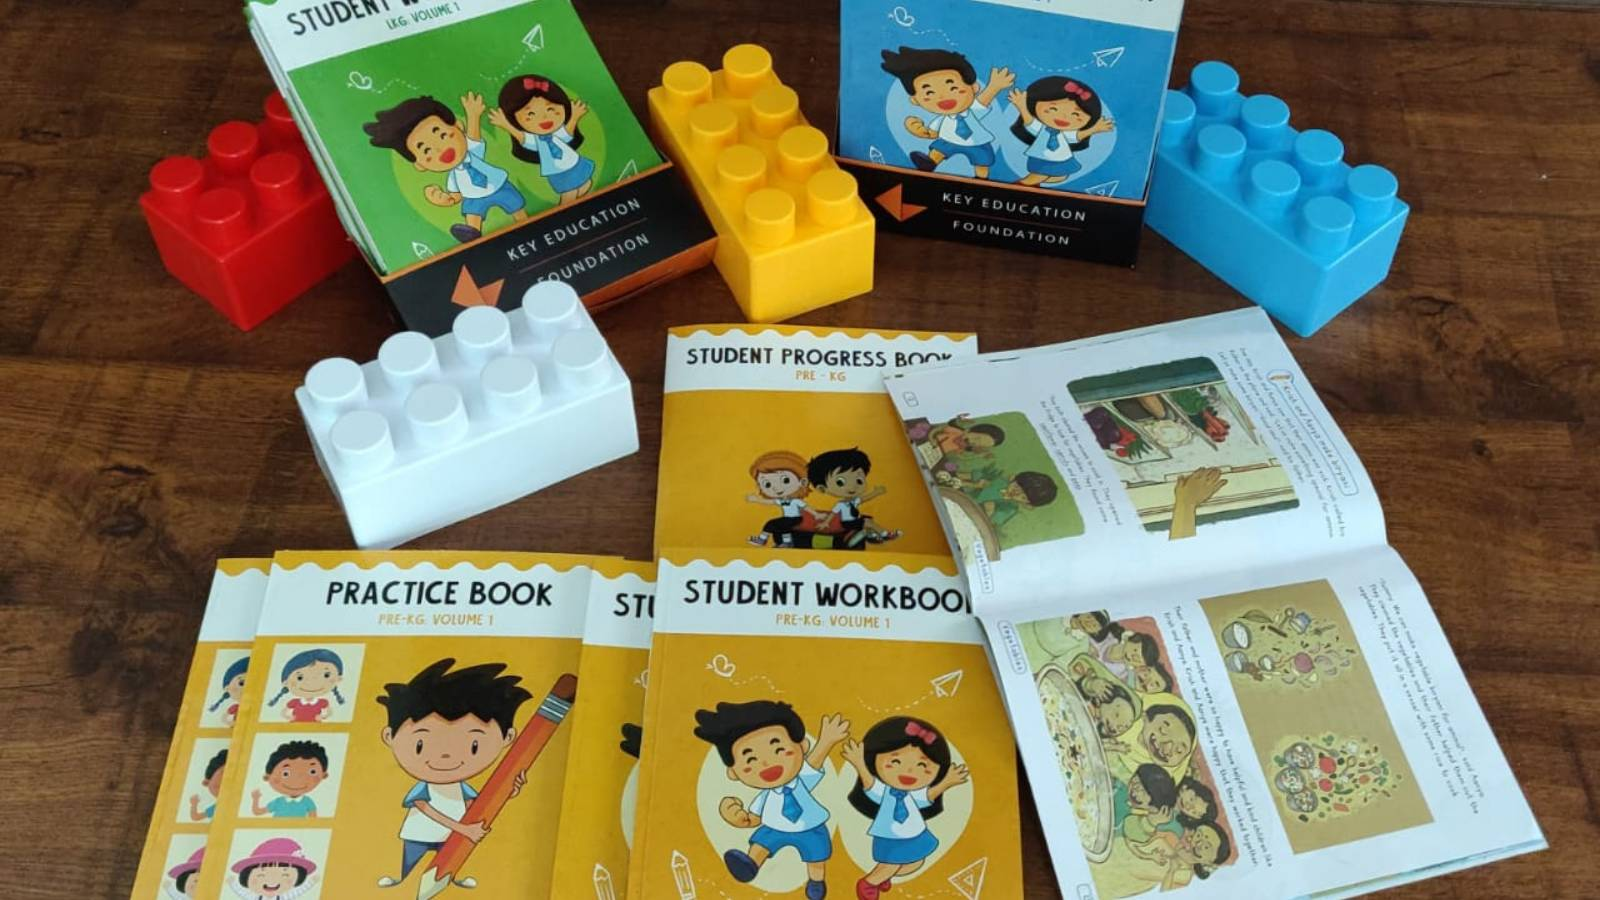 Student Workbook given to every child